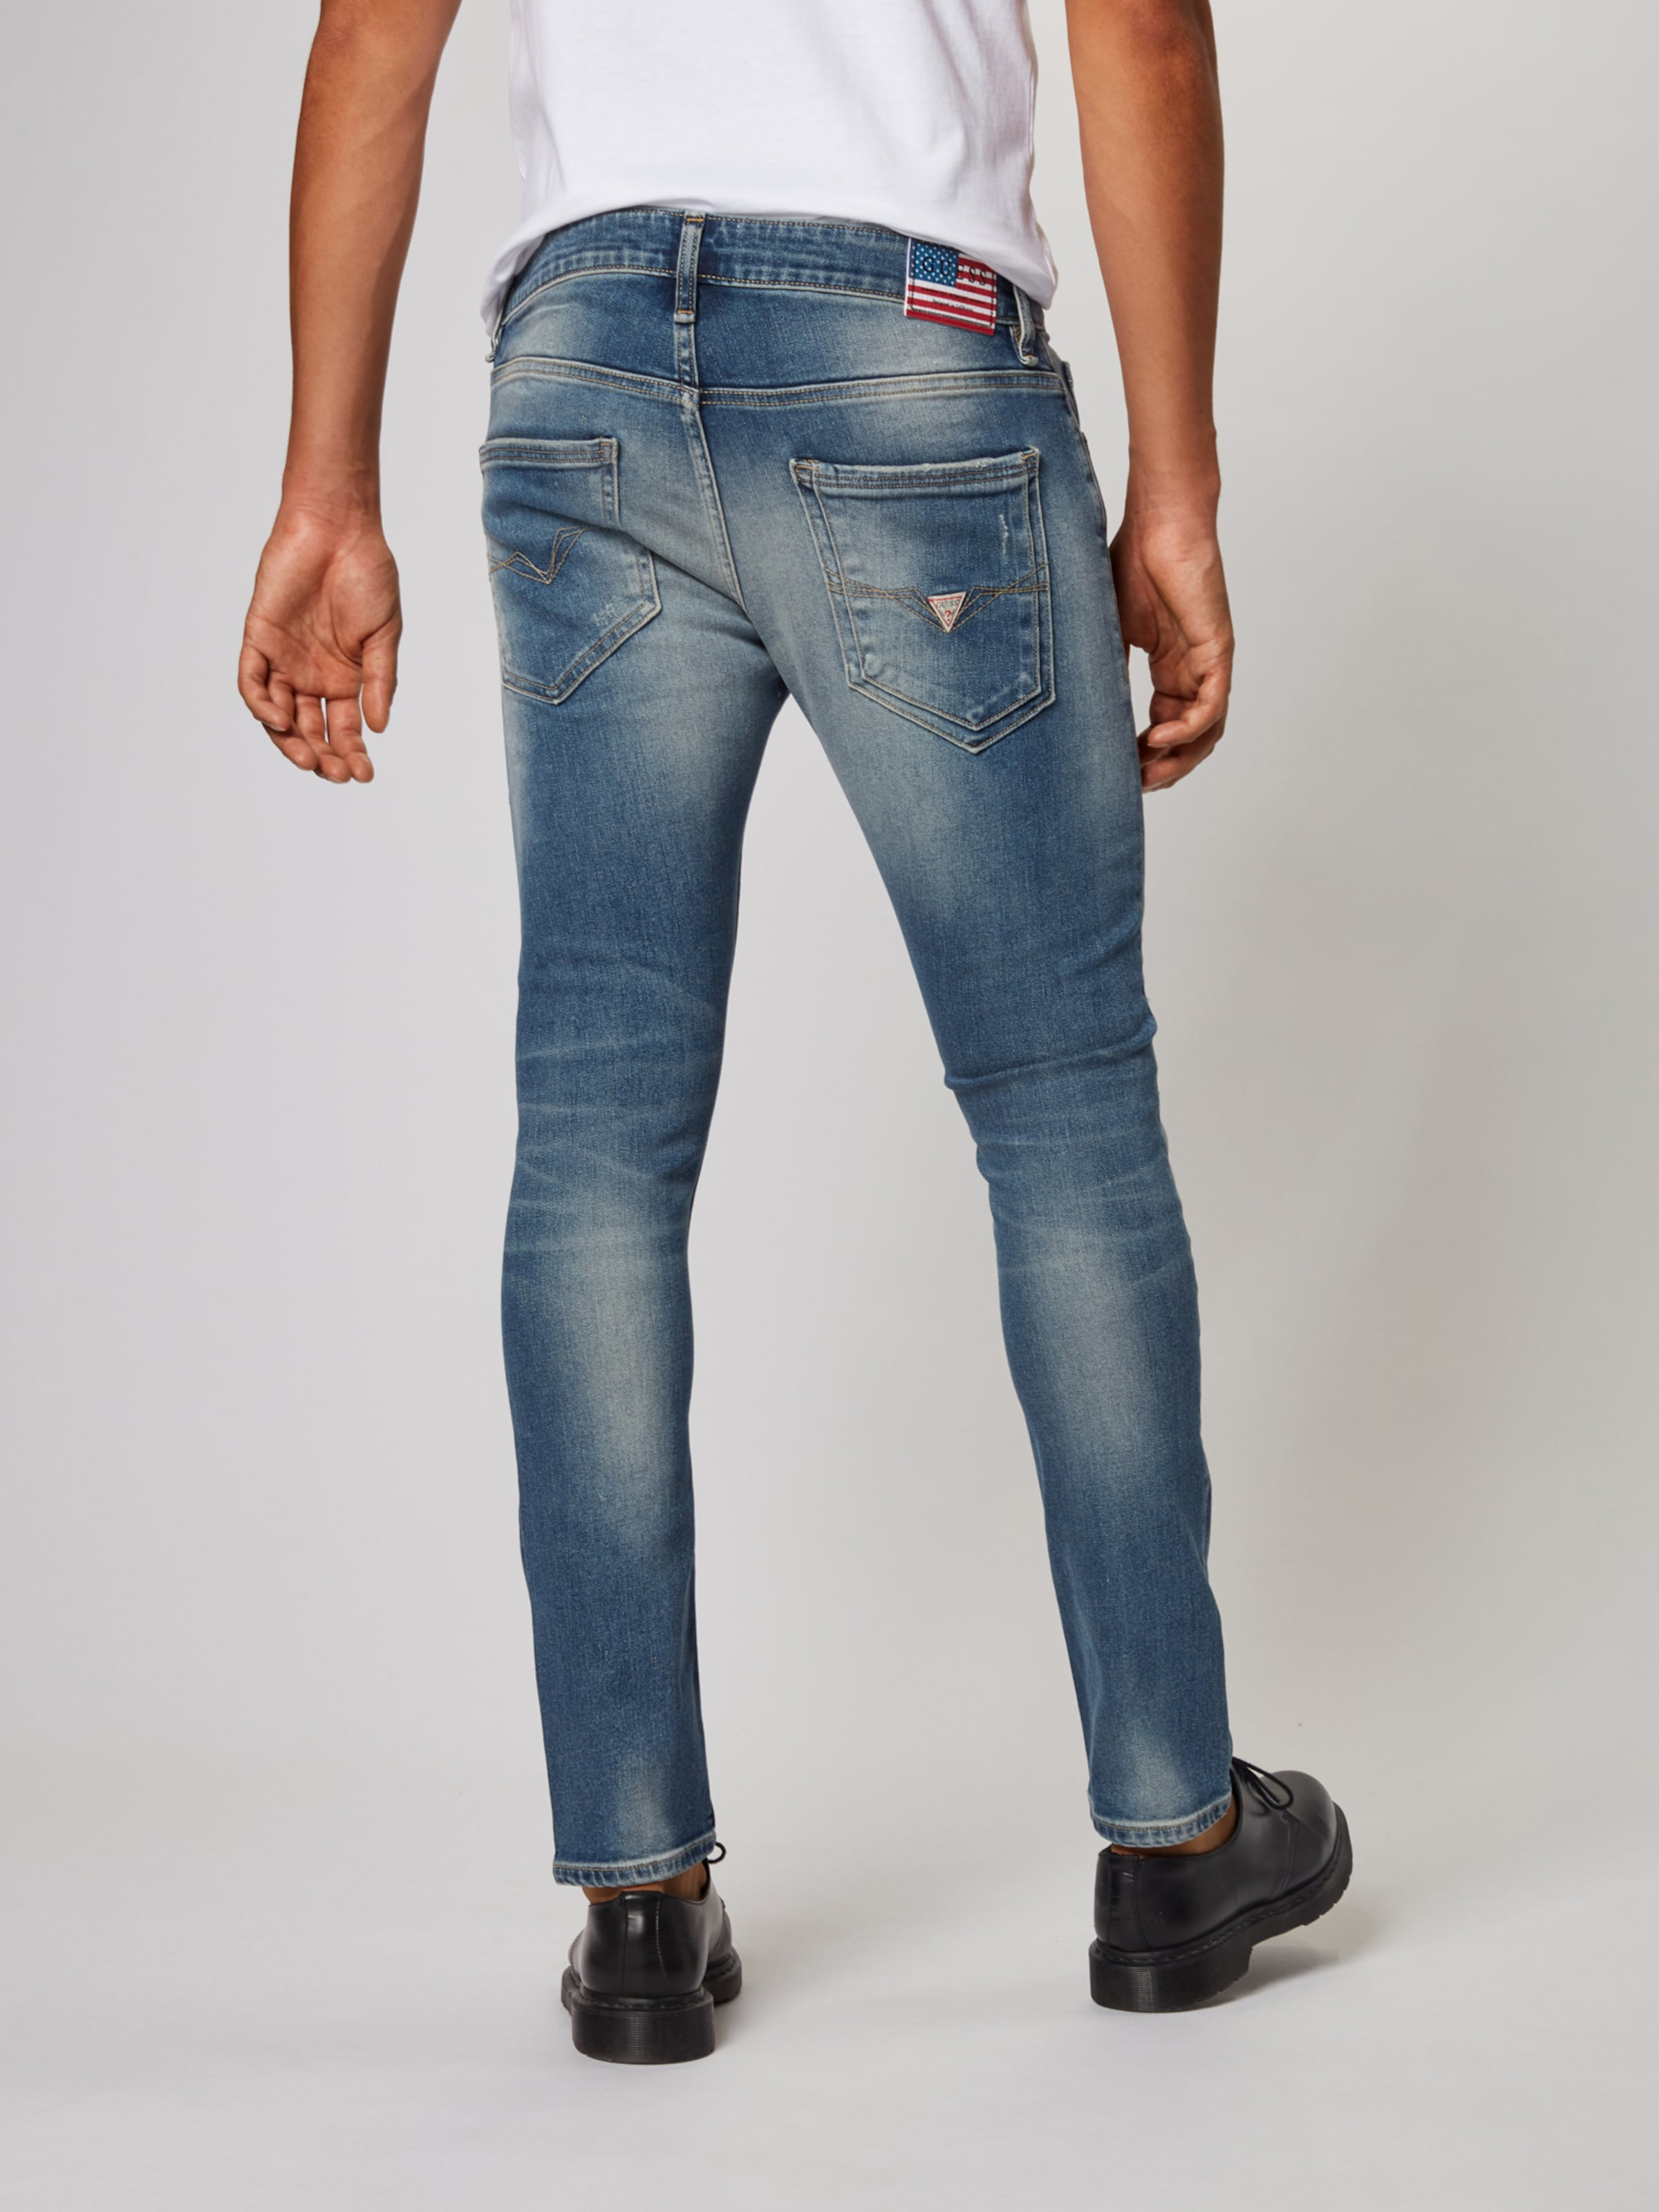 Guess In Blue Jeans 'miami' Denim Yb76Ifgyv